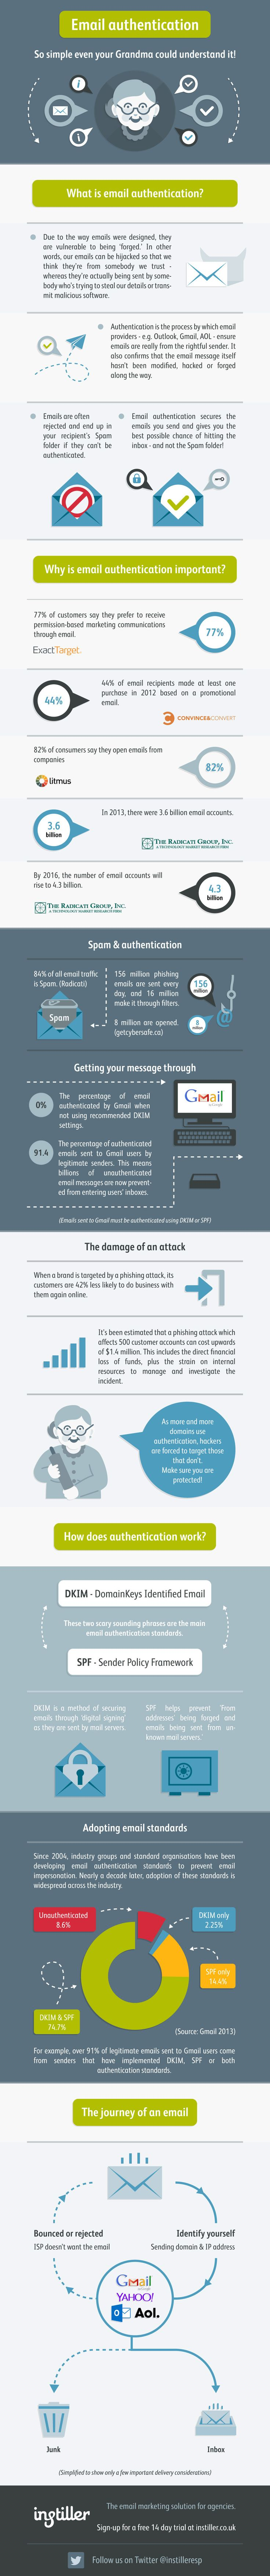 Email Authentication Made So Simple Even Your Grandma Could Understand It! #infographic #Business #Email